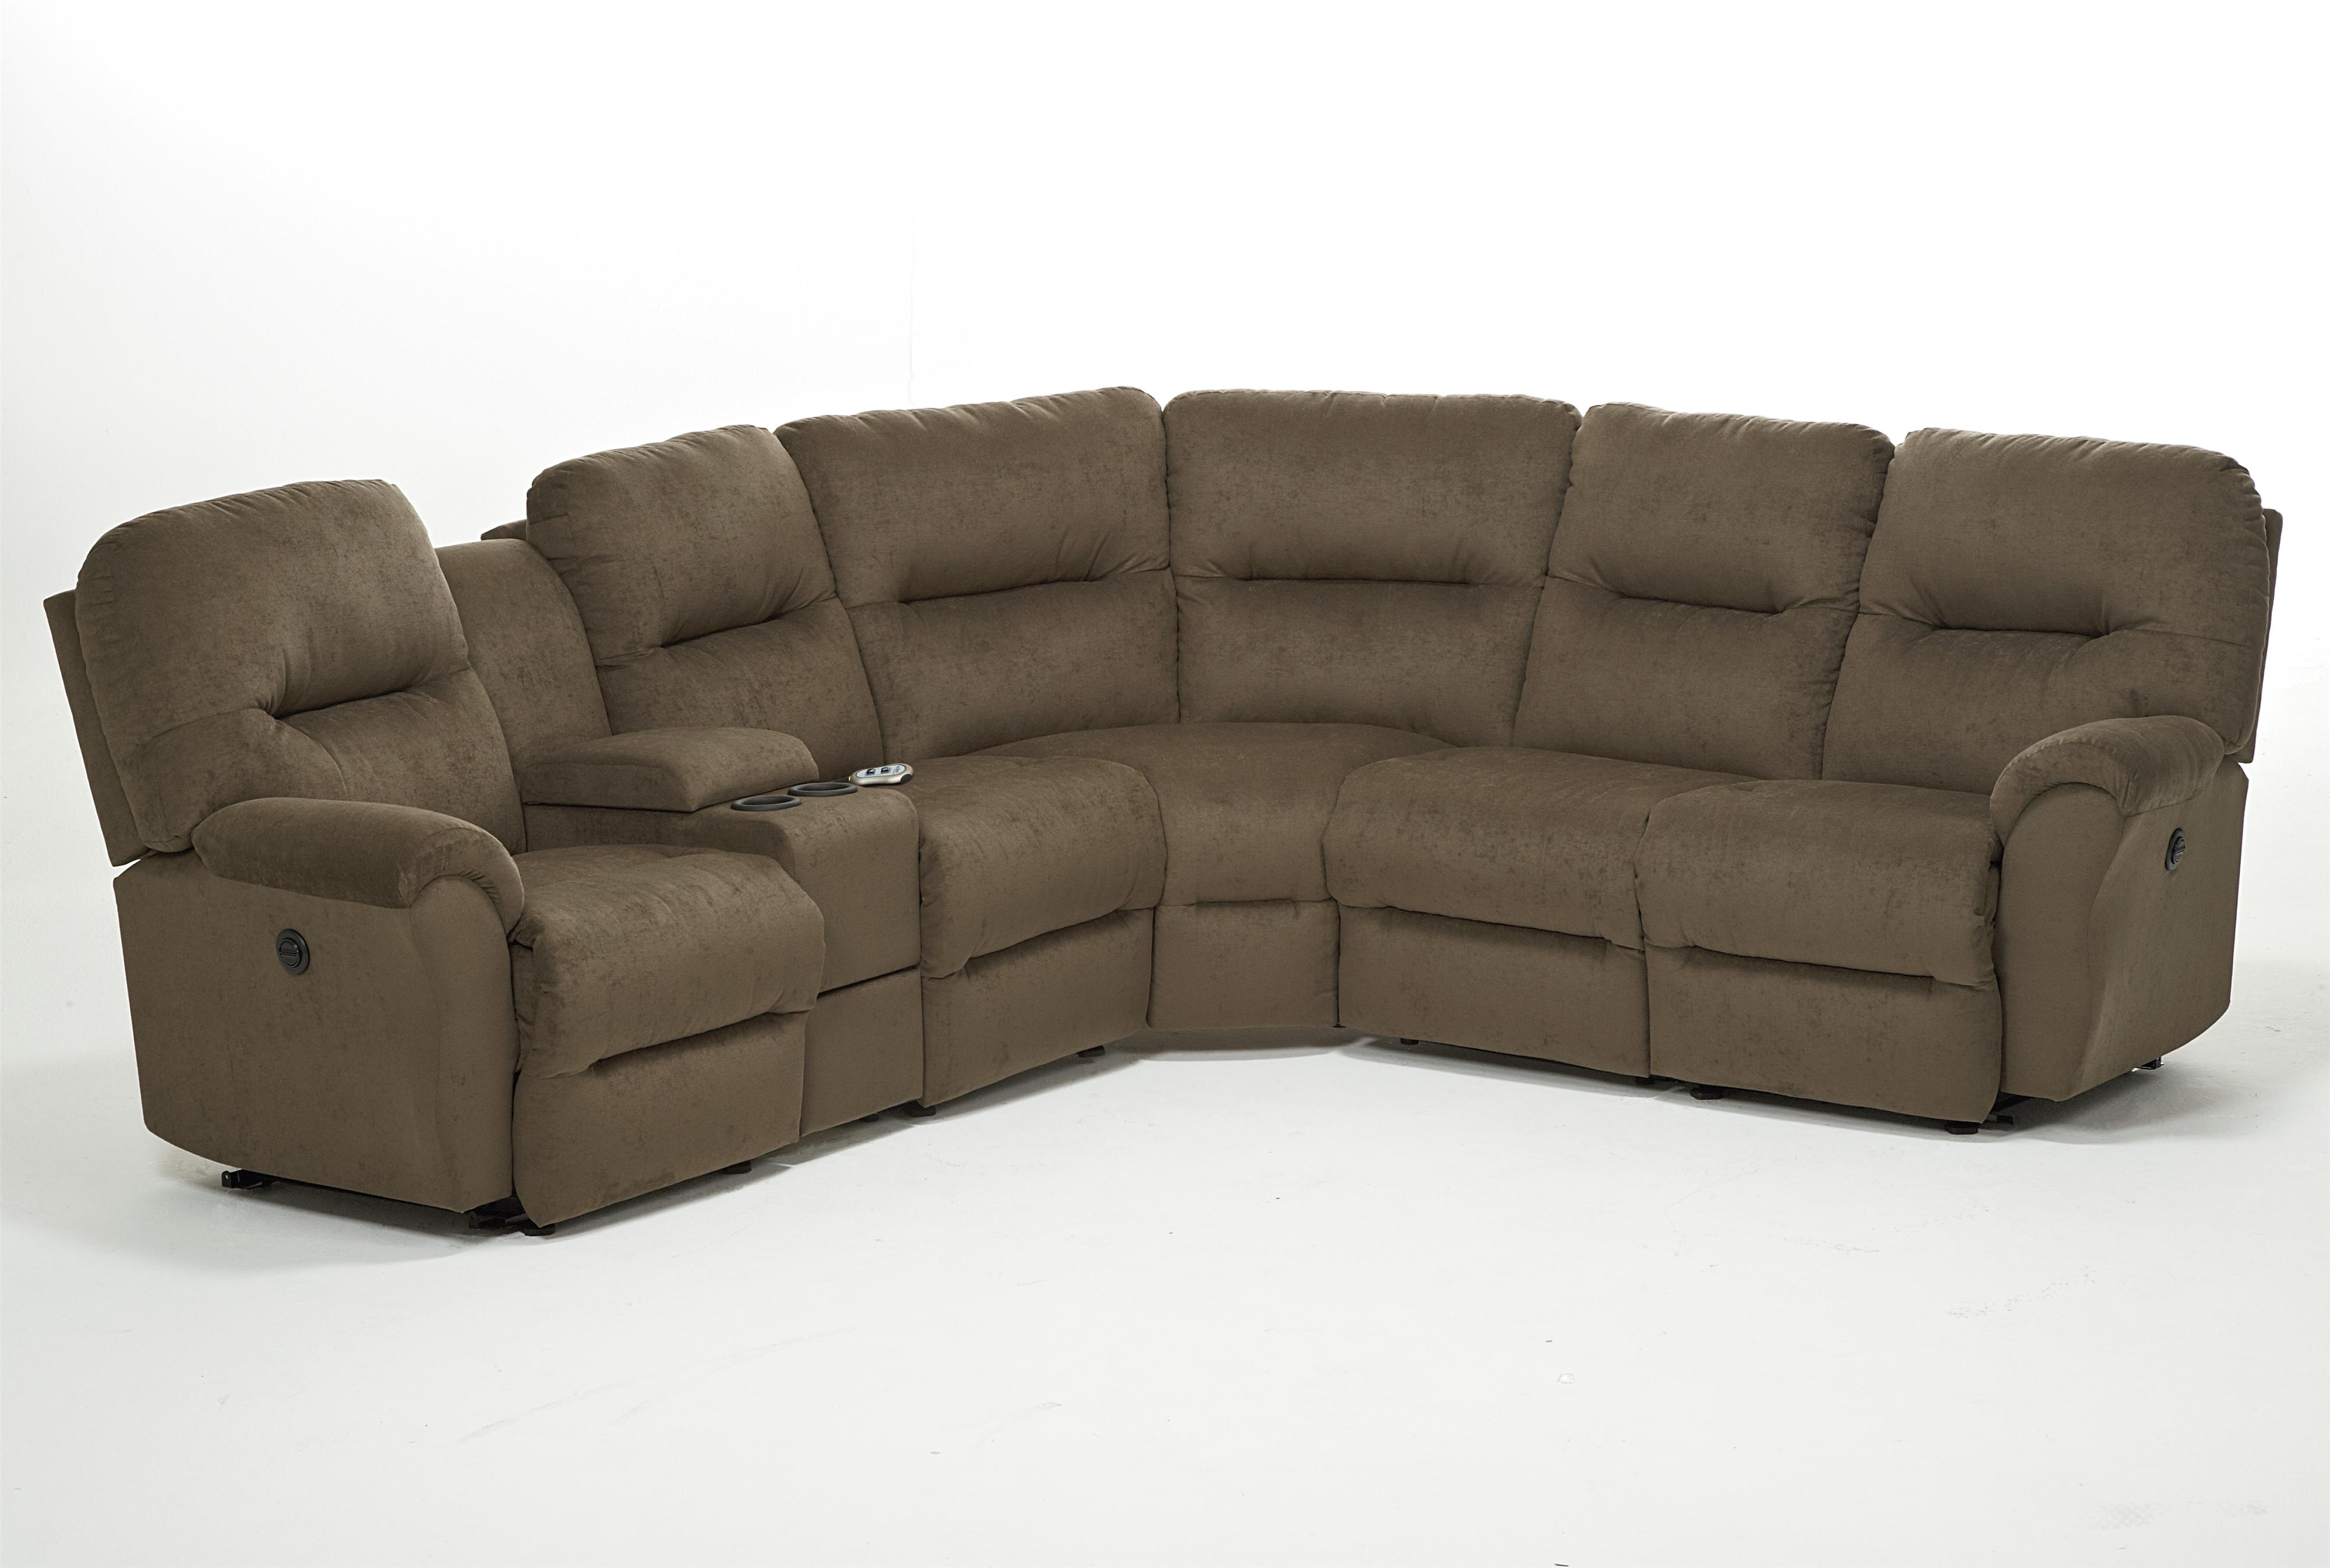 Bodie 6 Pc Power Reclining Sectional Sofa by Best Home Furnishings at Saugerties Furniture Mart